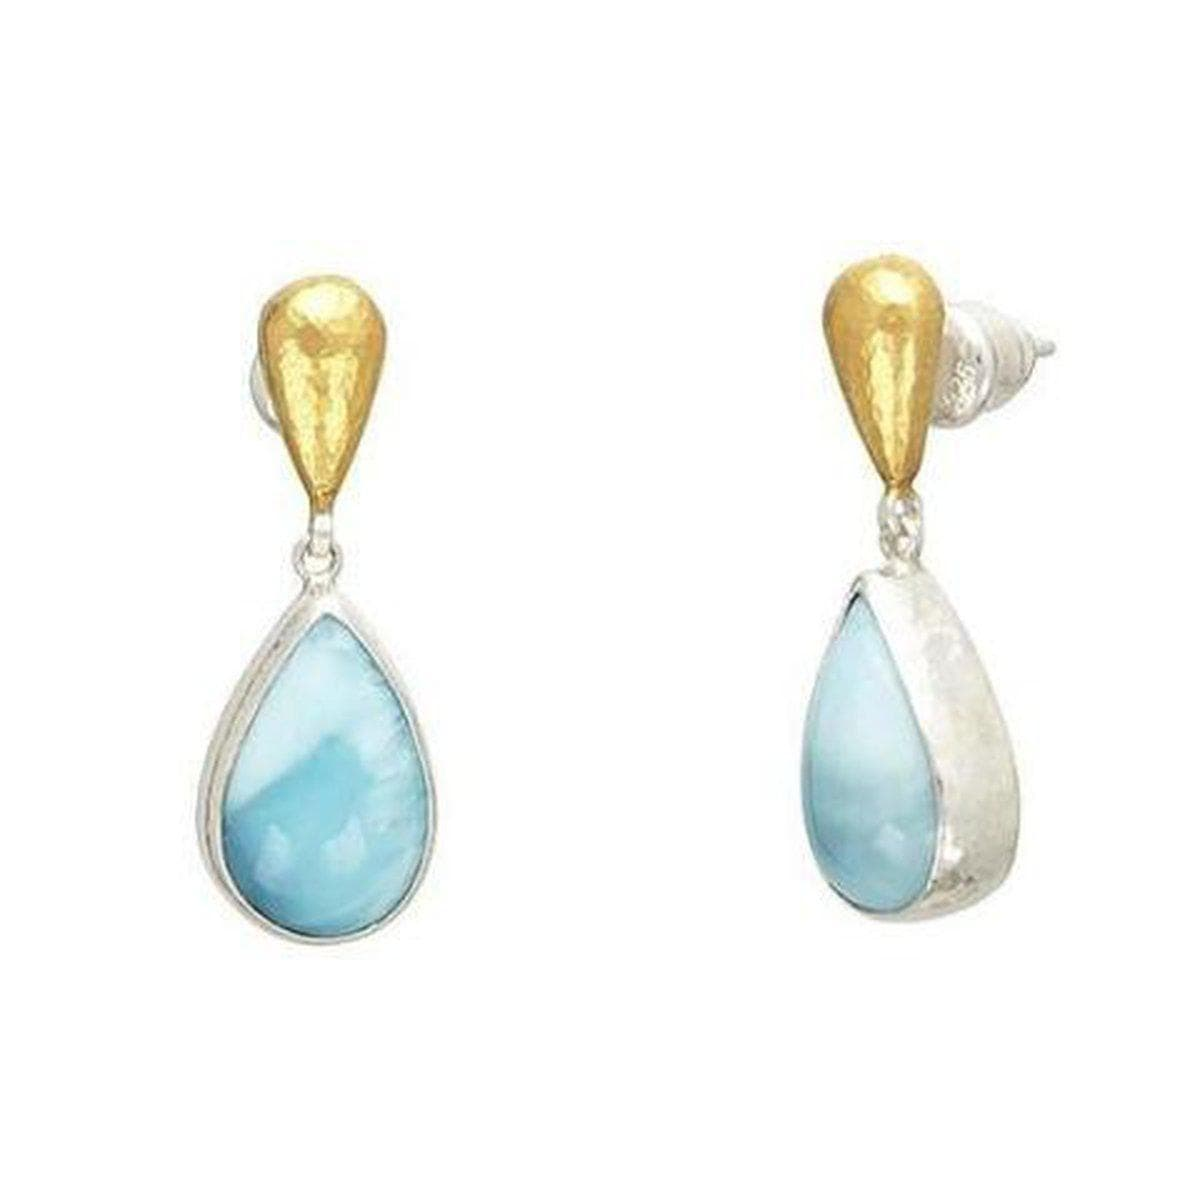 Galapagos Sterling Silver Larimar Earrings - SE-U24935-LRM-GURHAN-Renee Taylor Gallery